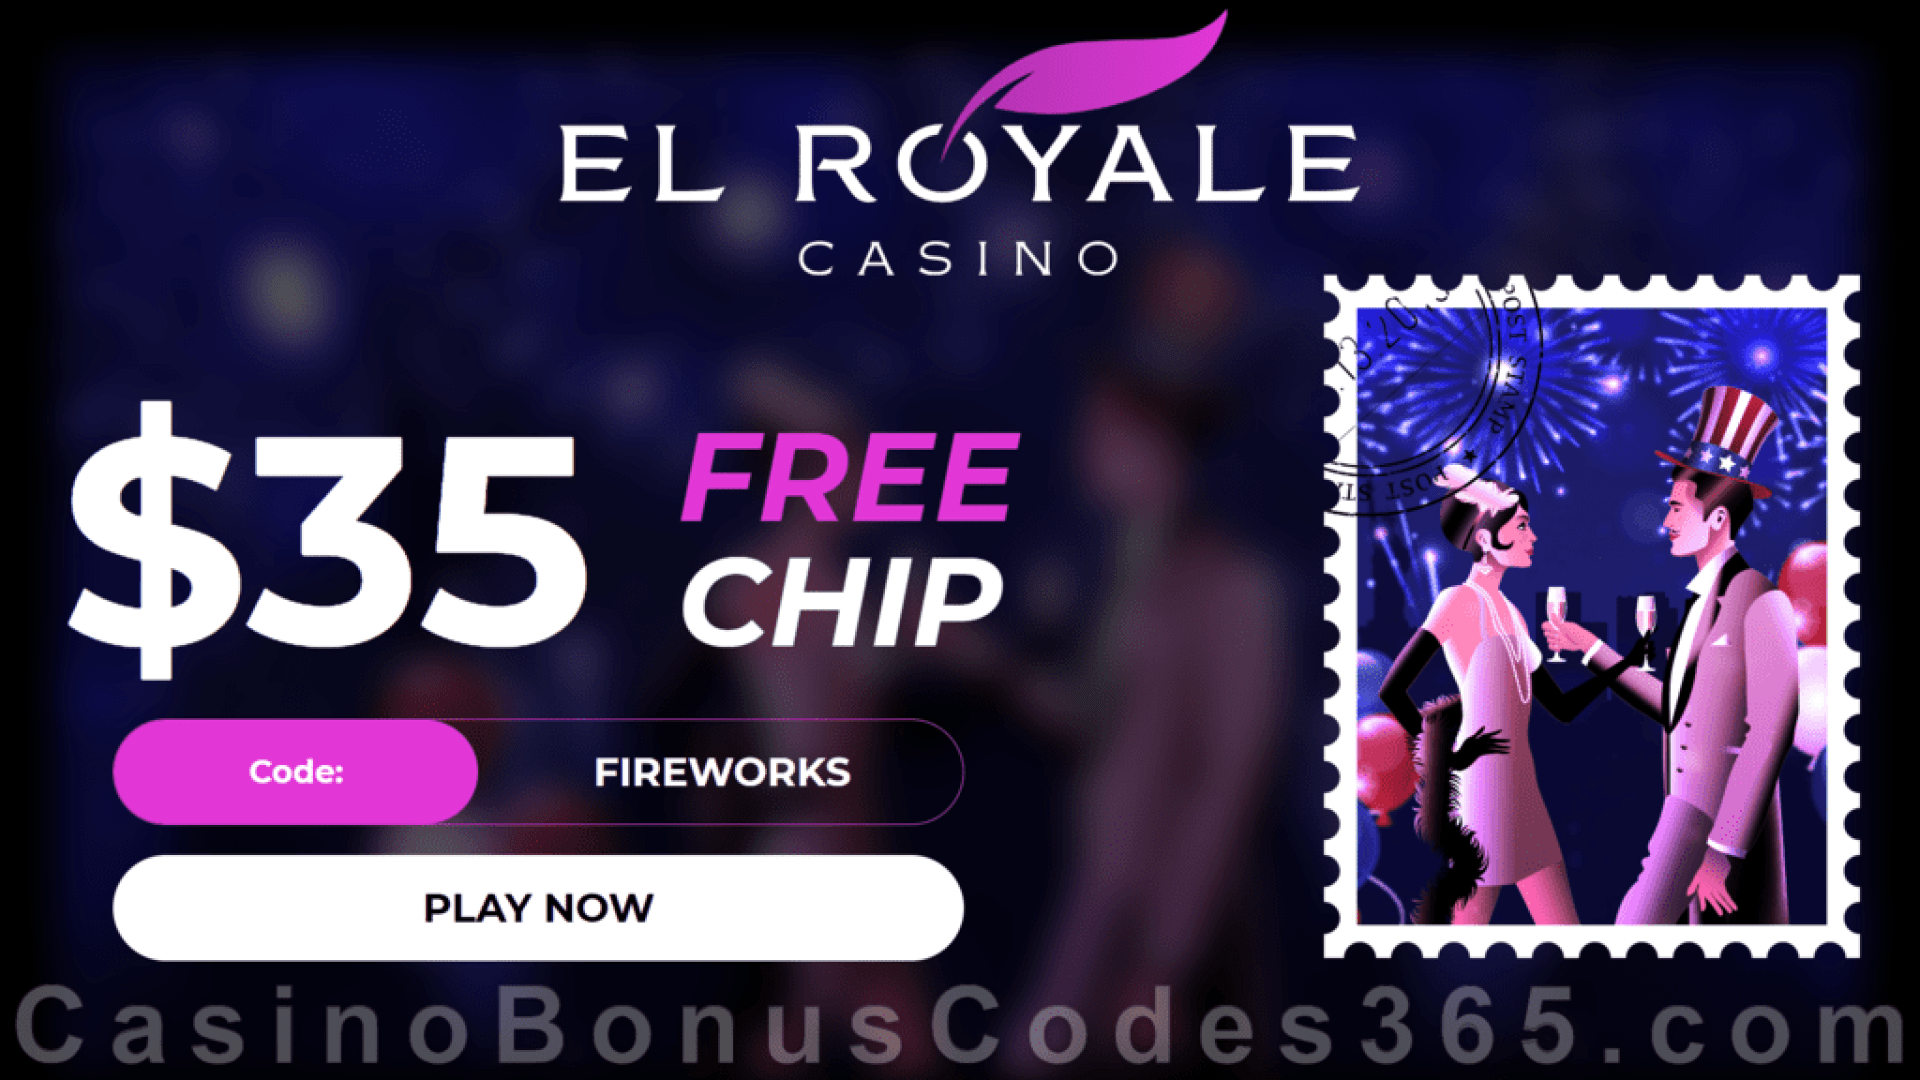 El Royale Casino $35 FREE Chip 4th of July Special Promotion